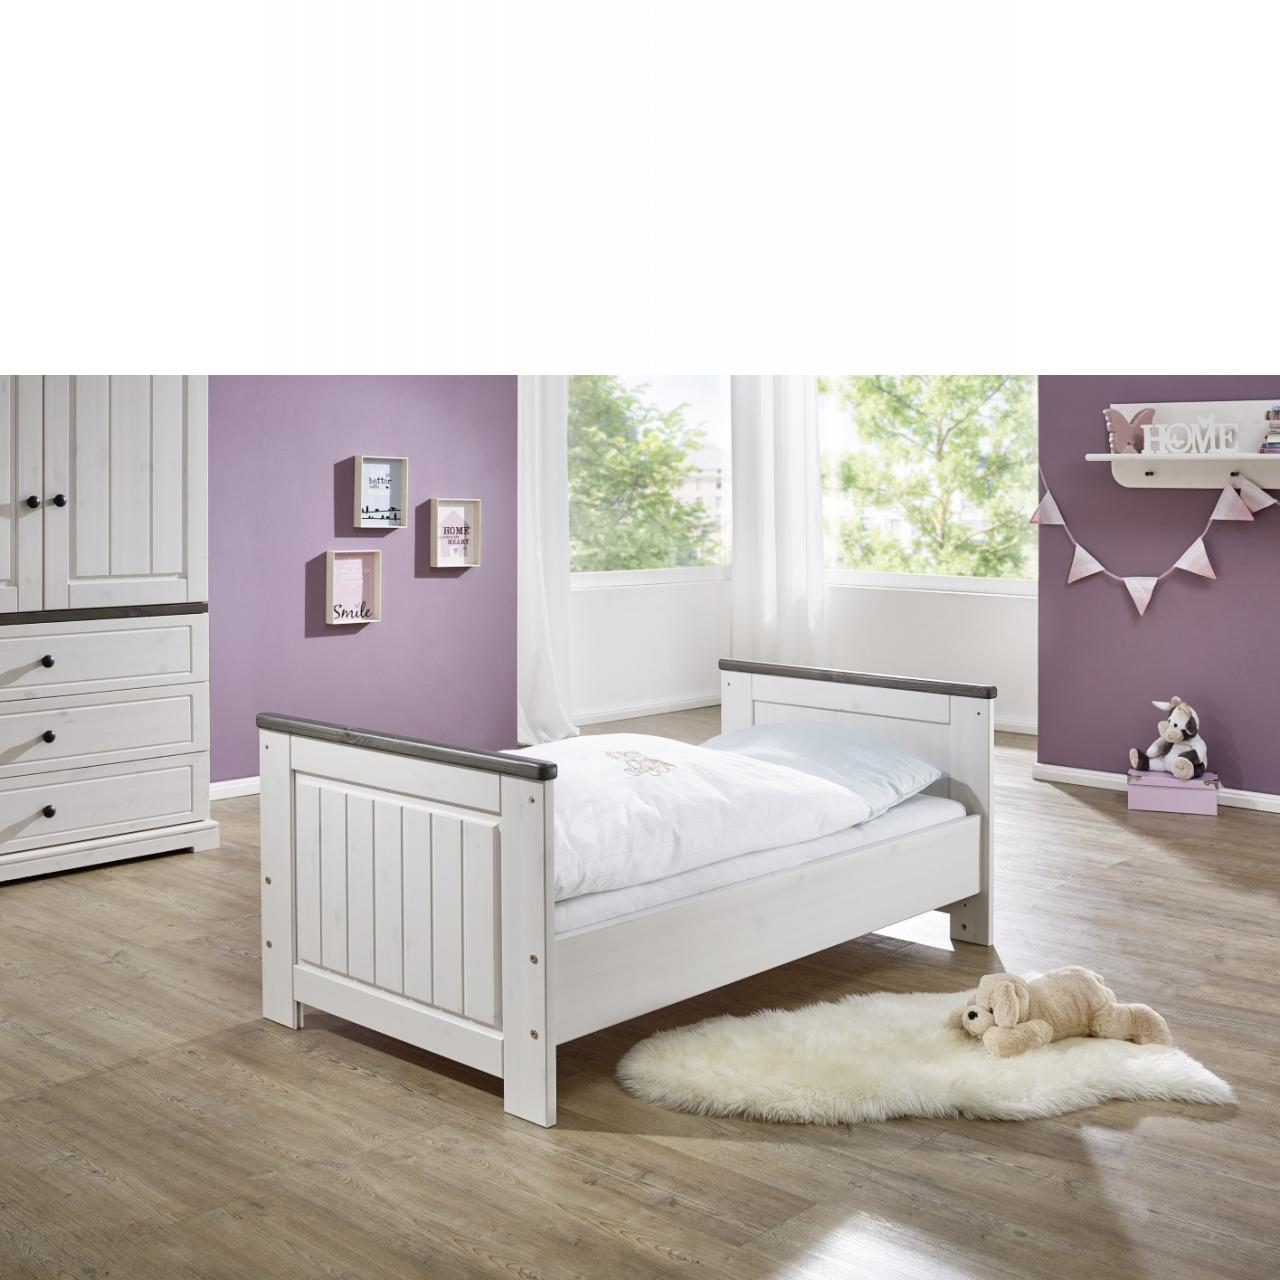 kinderbetten online kaufen m bel j hnichen center gmbh m bel j hnichen center gmbh. Black Bedroom Furniture Sets. Home Design Ideas